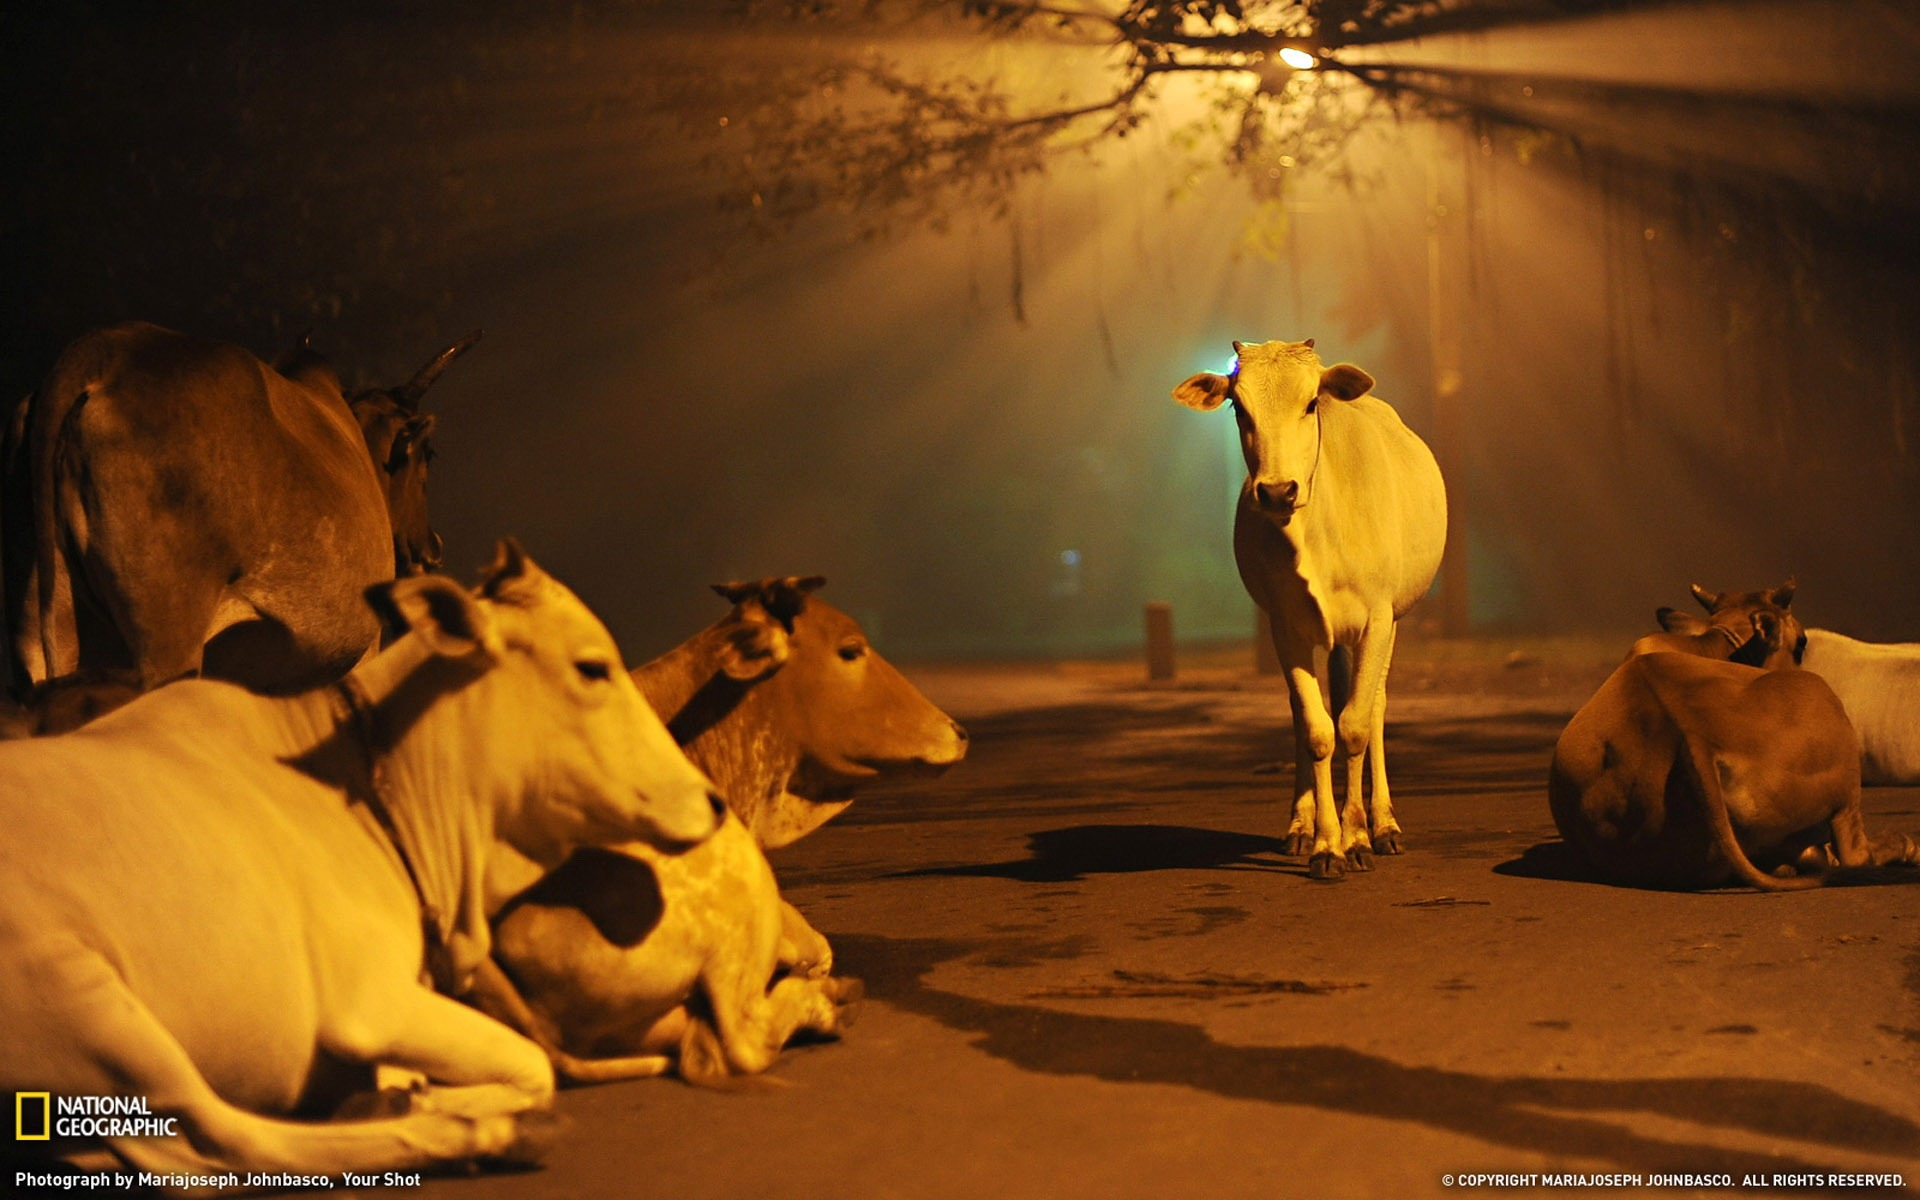 Cows India-National Geographic Best Wallpapers of 2012 - 1920x1200 wallpaper download